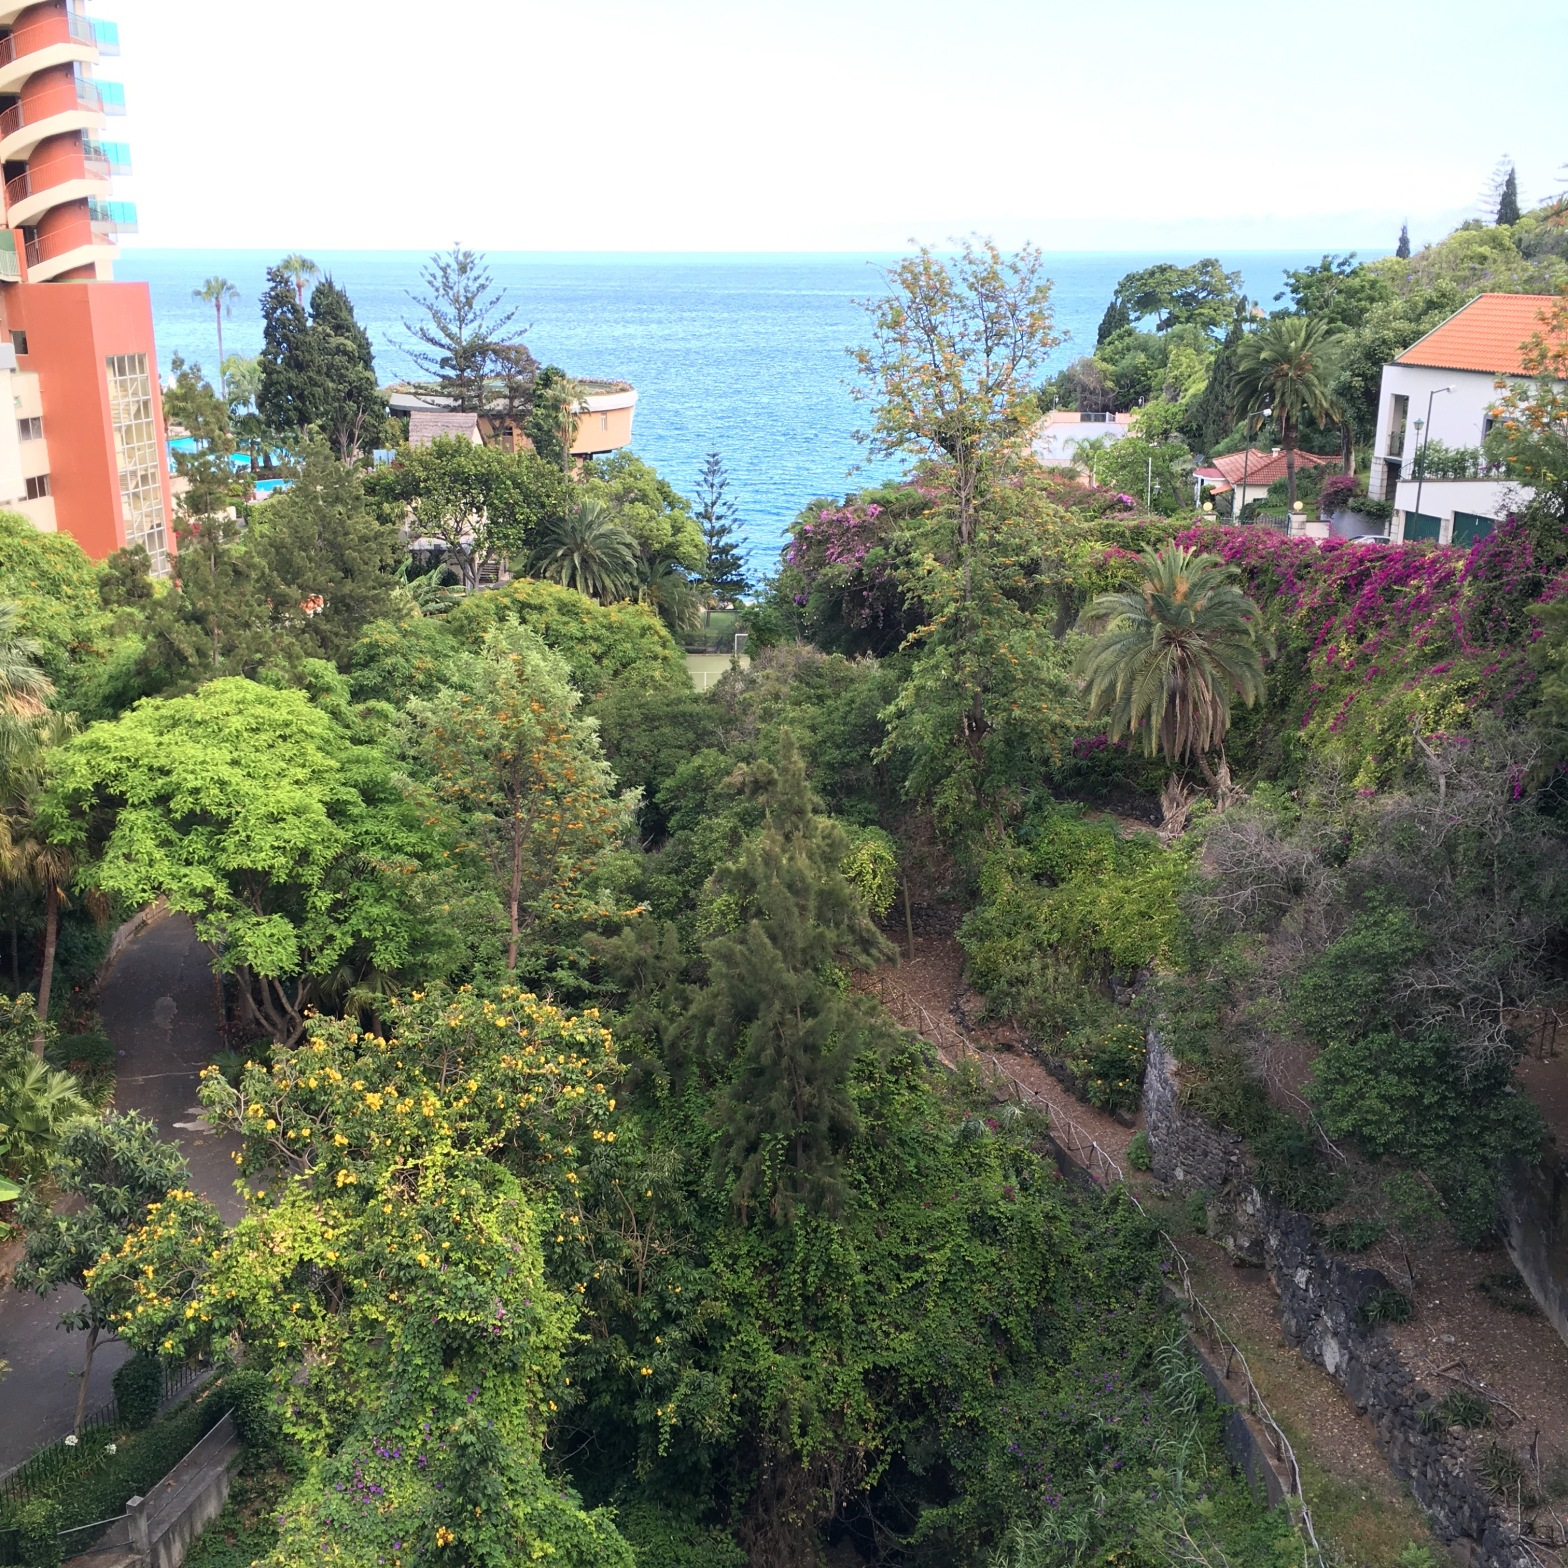 Dizzy heights in Madeira